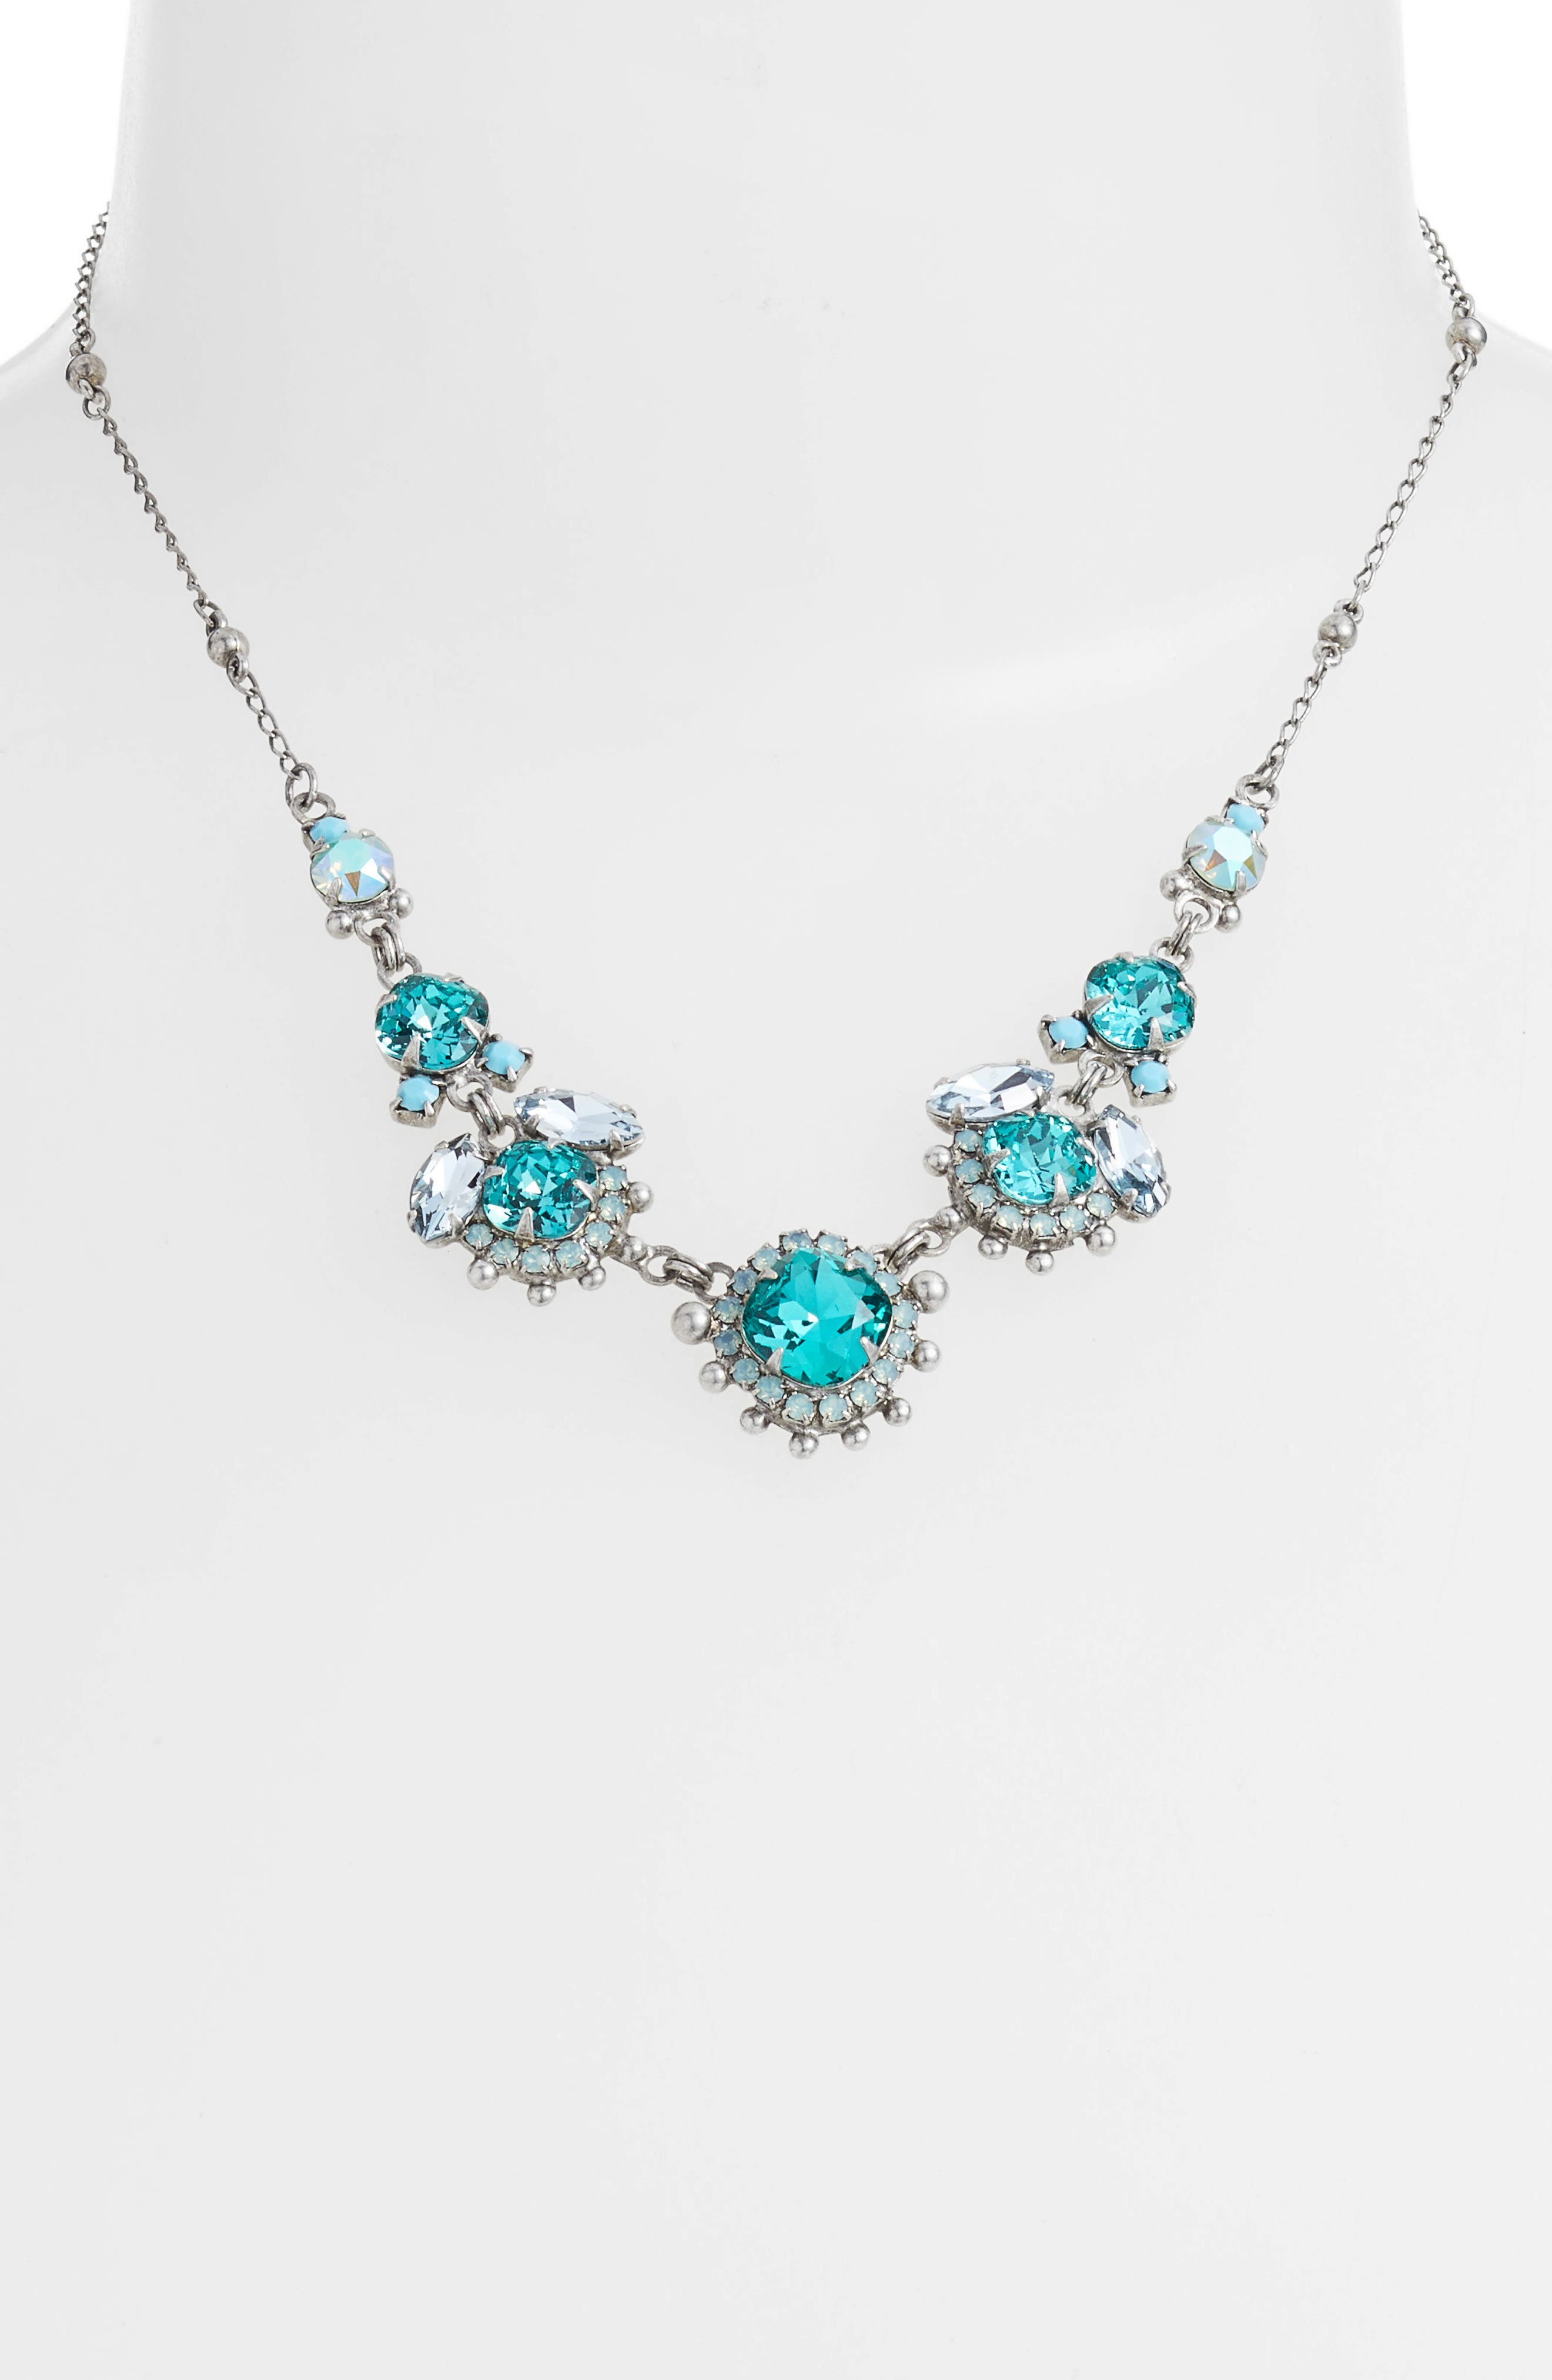 California Poppy Crystal Necklace,                         Main,                         color, Blue-Green